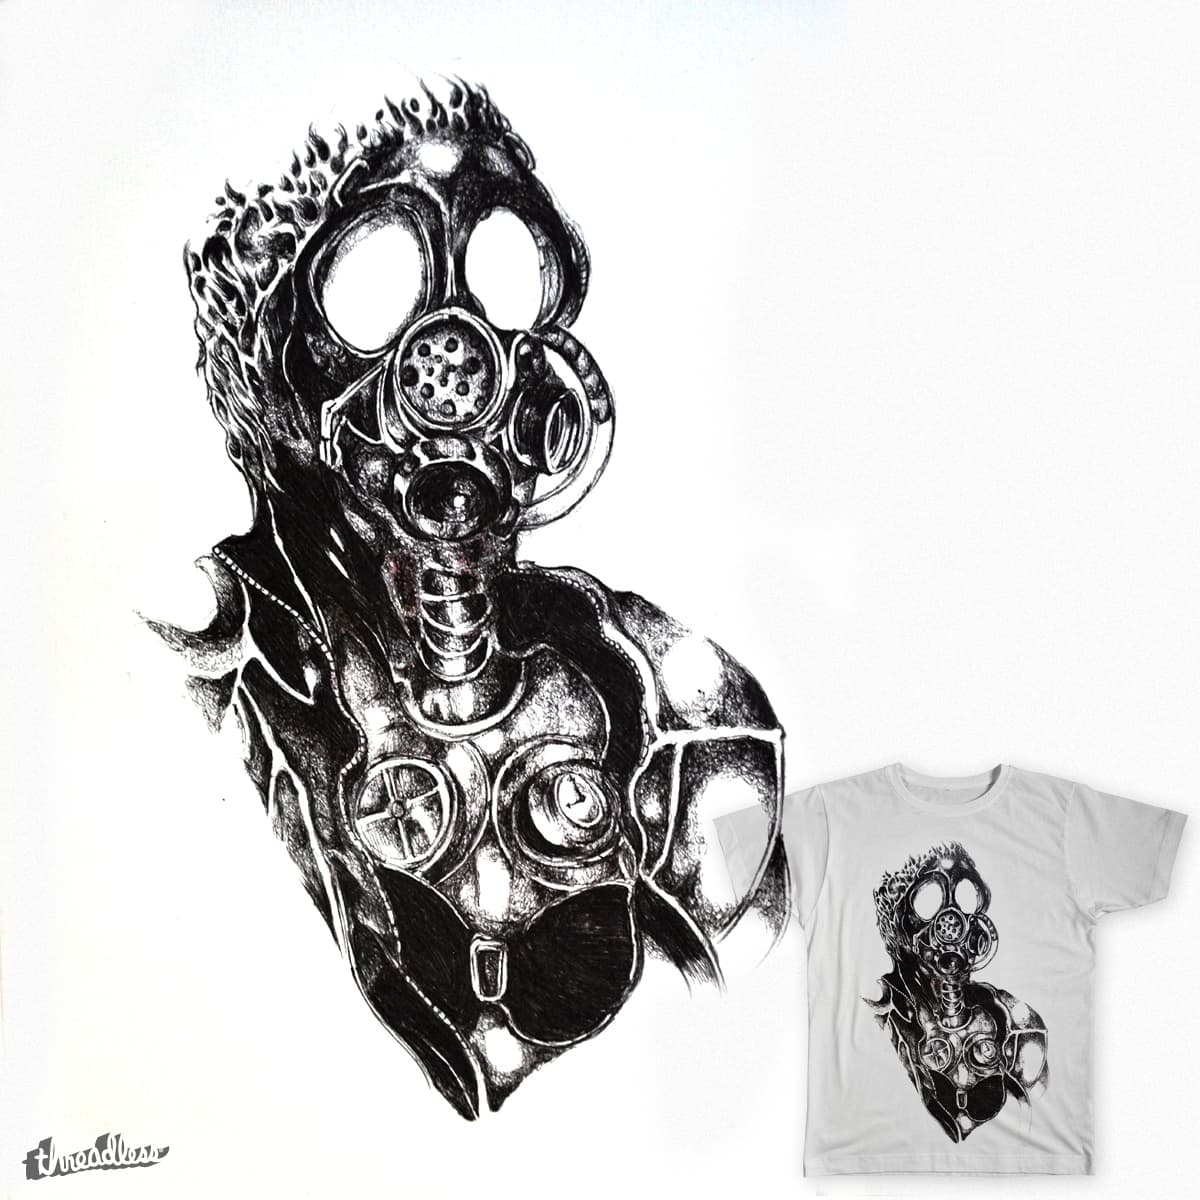 Man in Gas Mask by thatsmytee_1 on Threadless